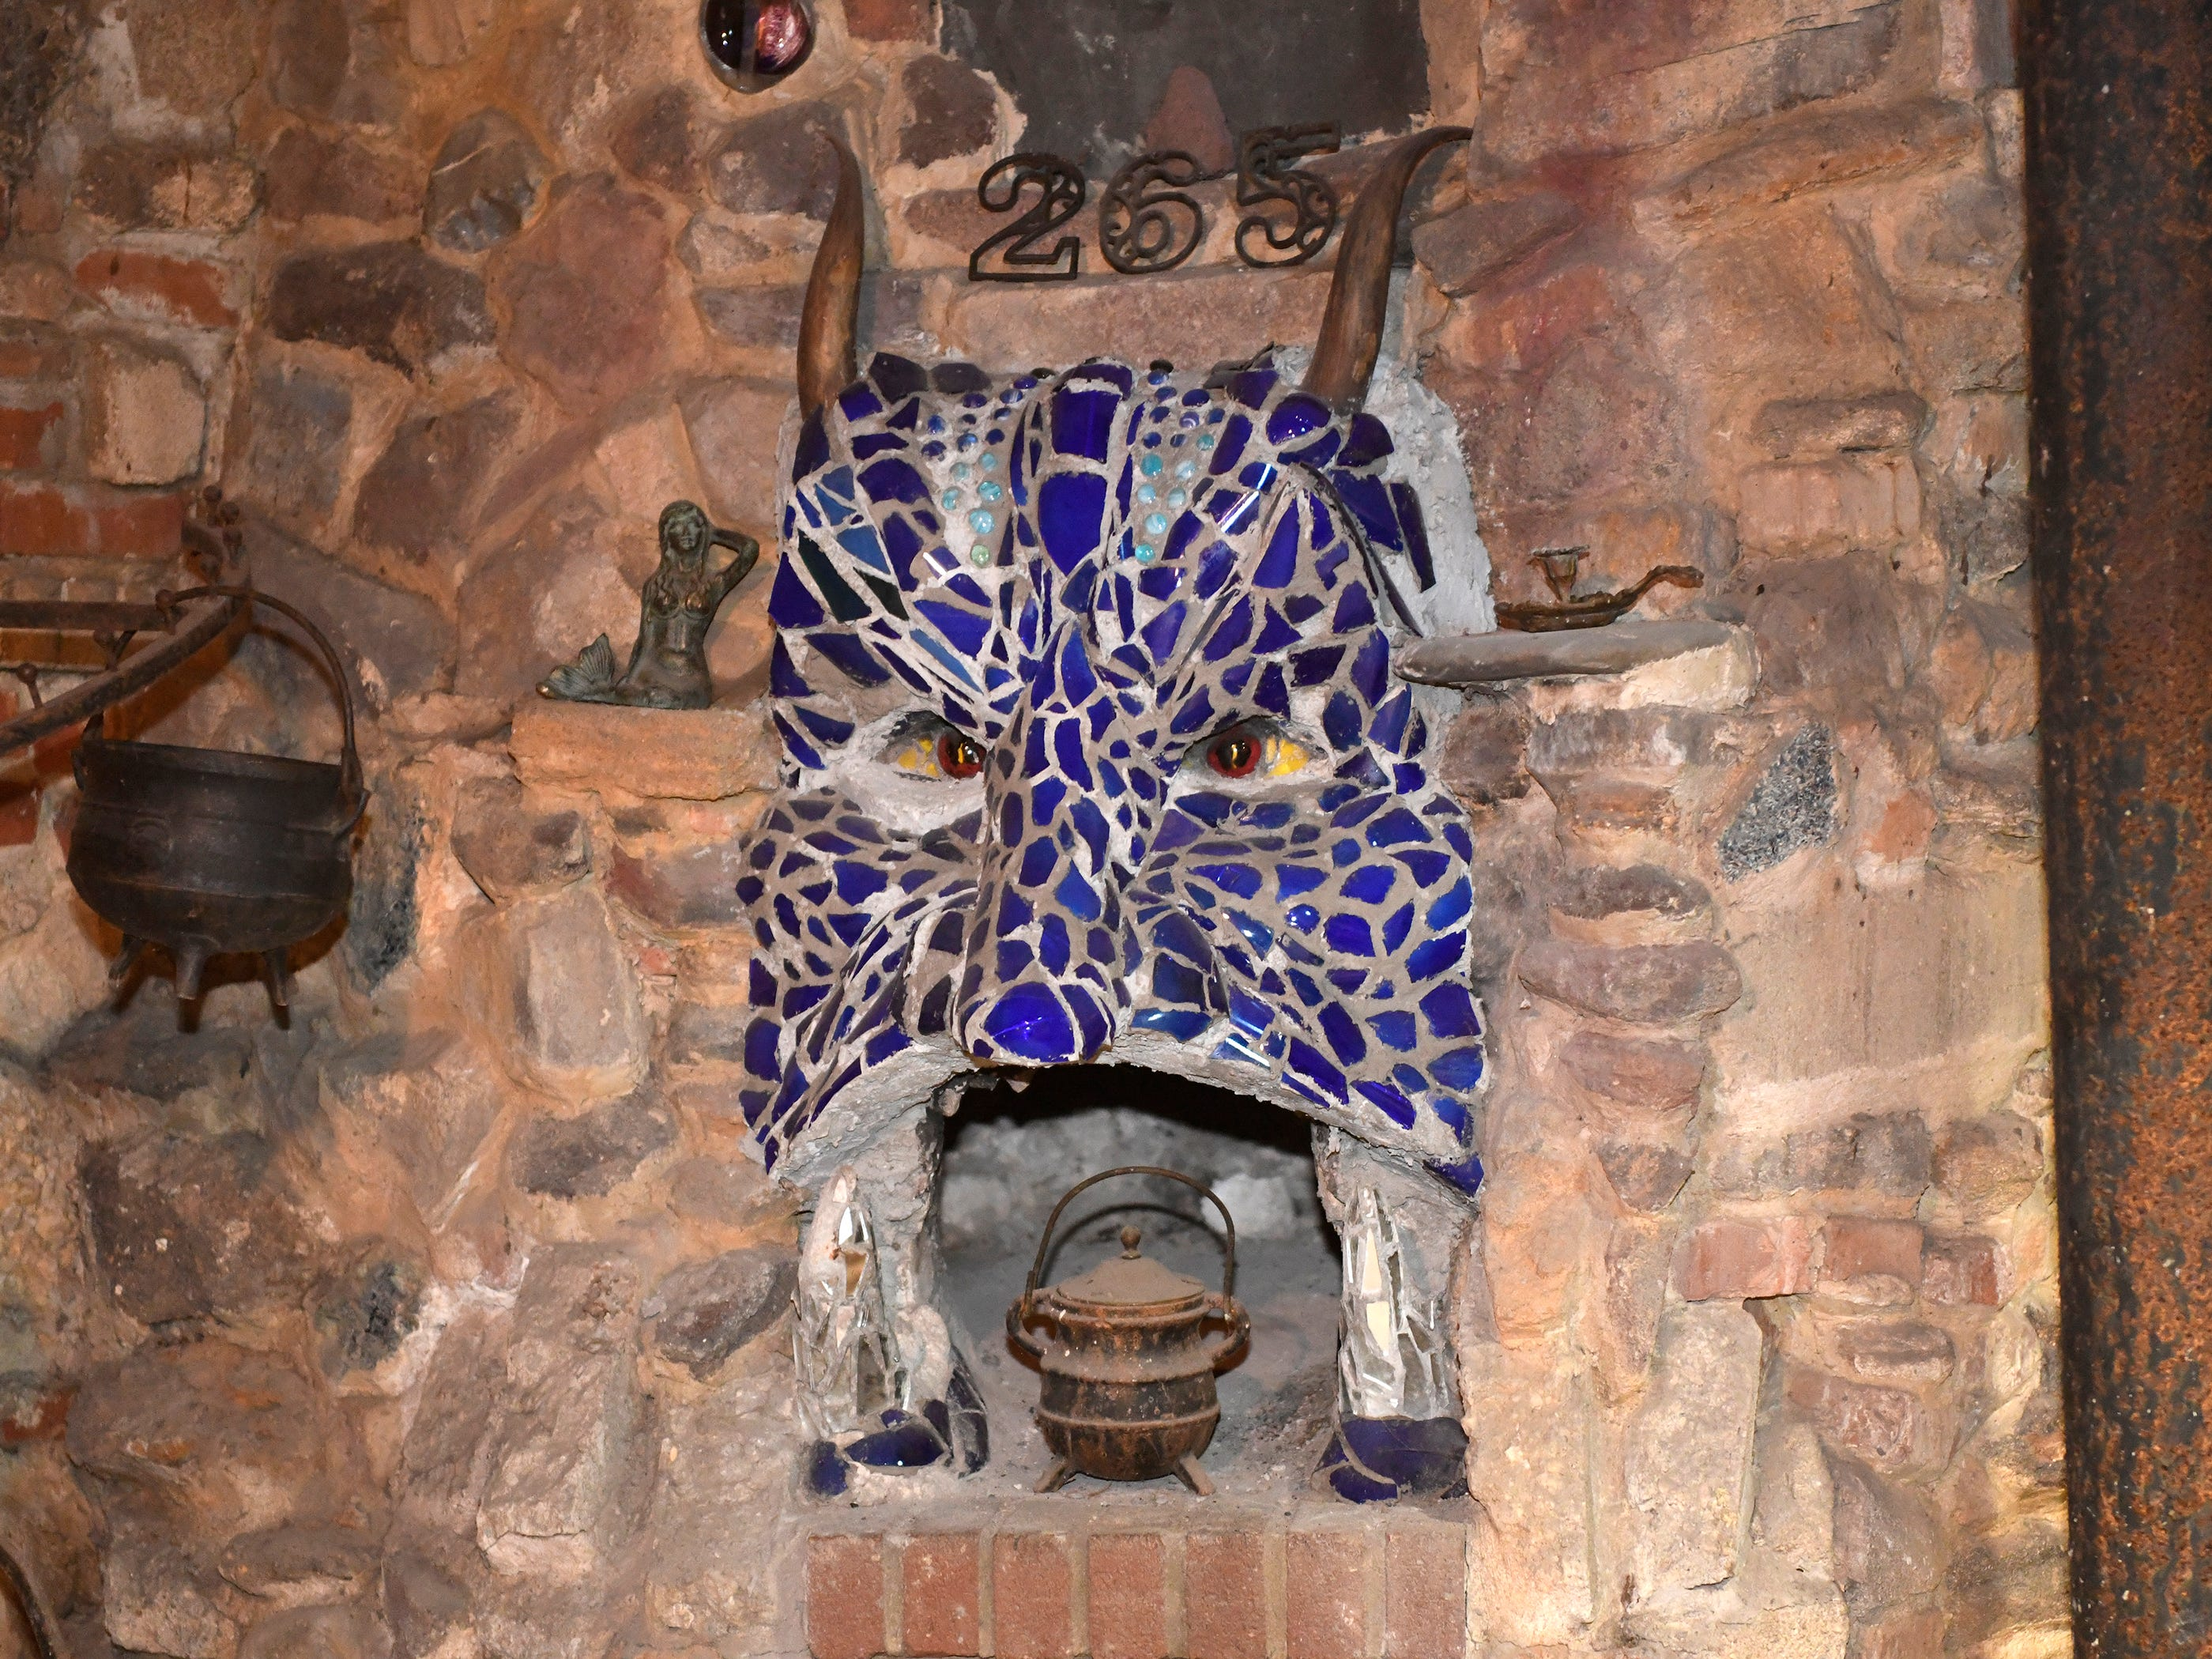 """The working """"Jersey Devil"""" fireplace in the basement of the Palace of Depression located on Mill Road just South of Landis Avenue in Vineland."""